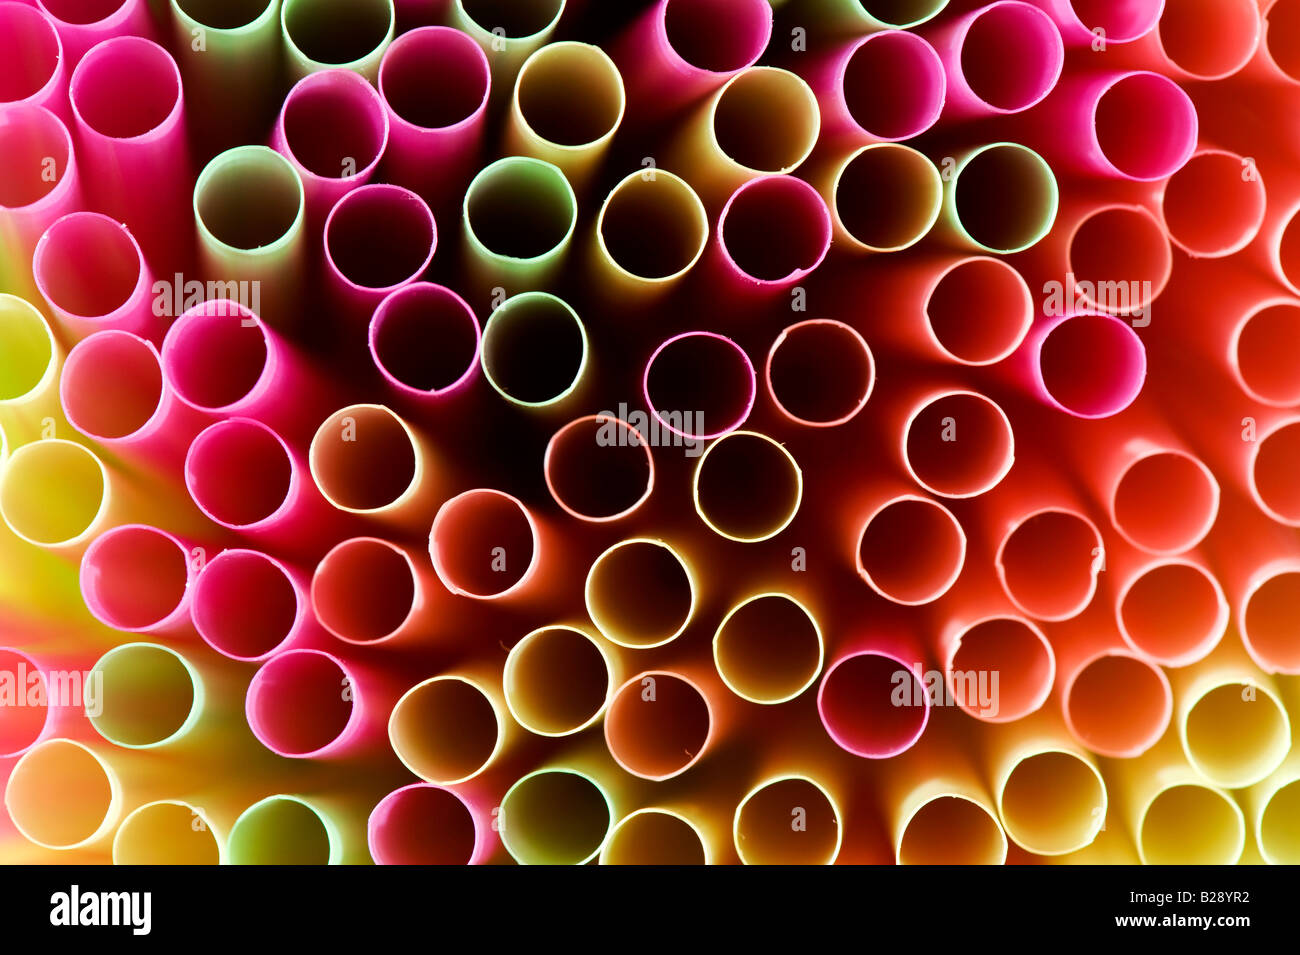 Colourful drinking straws abstract pattern - Stock Image